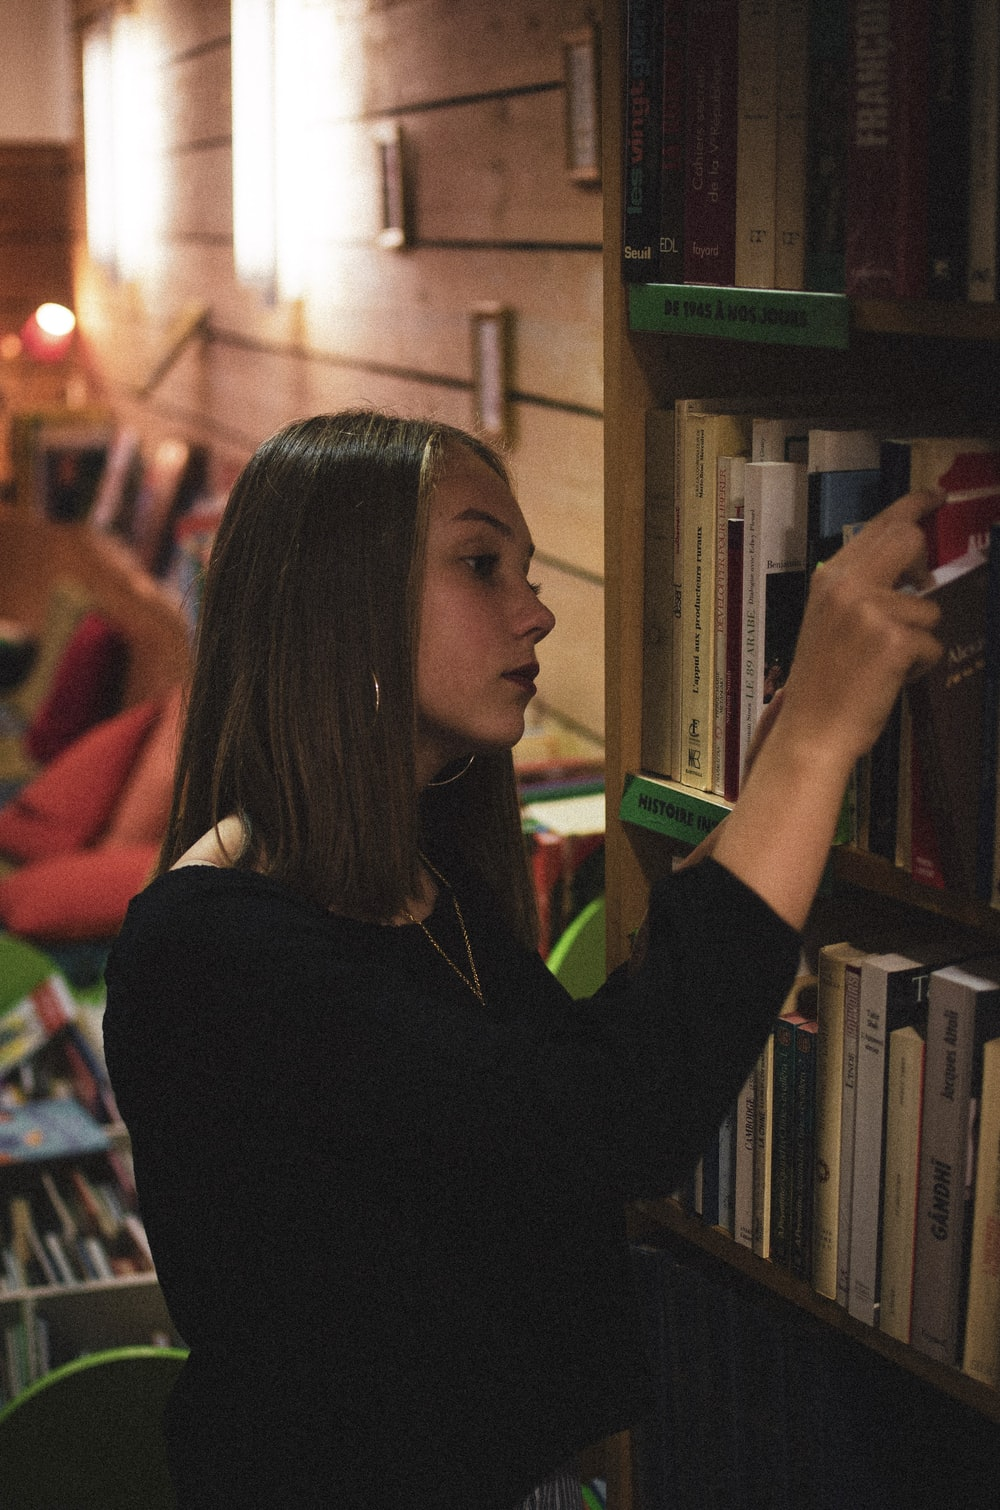 woman getting books from shelf